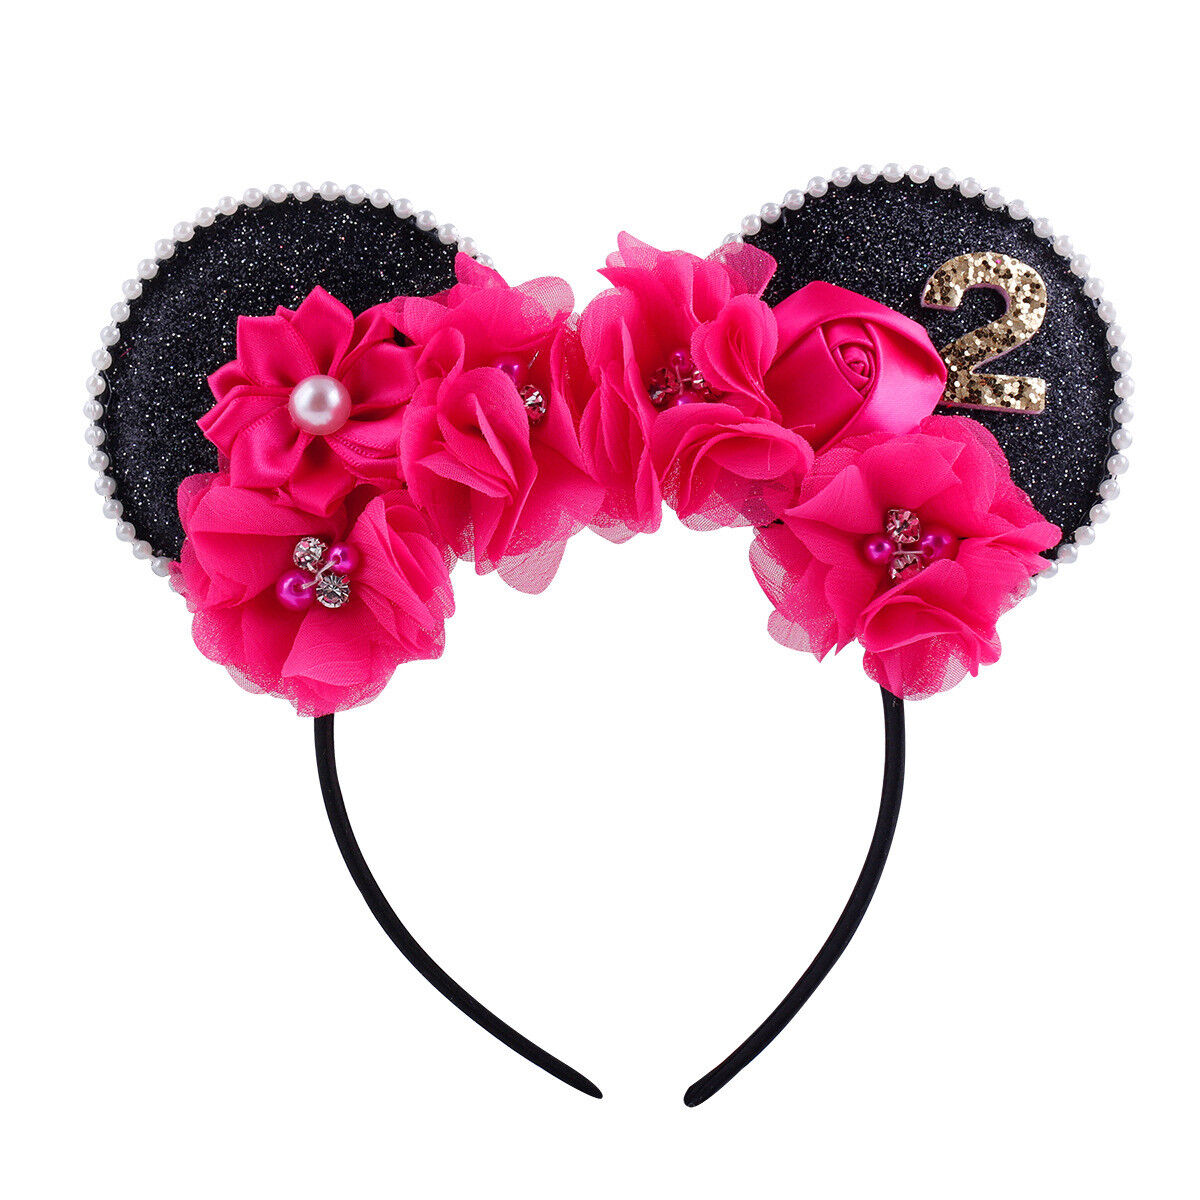 Minnie Mouse Ear Pearls Flower Headband For Girls 1st 2nd 3rd Birthday Costume